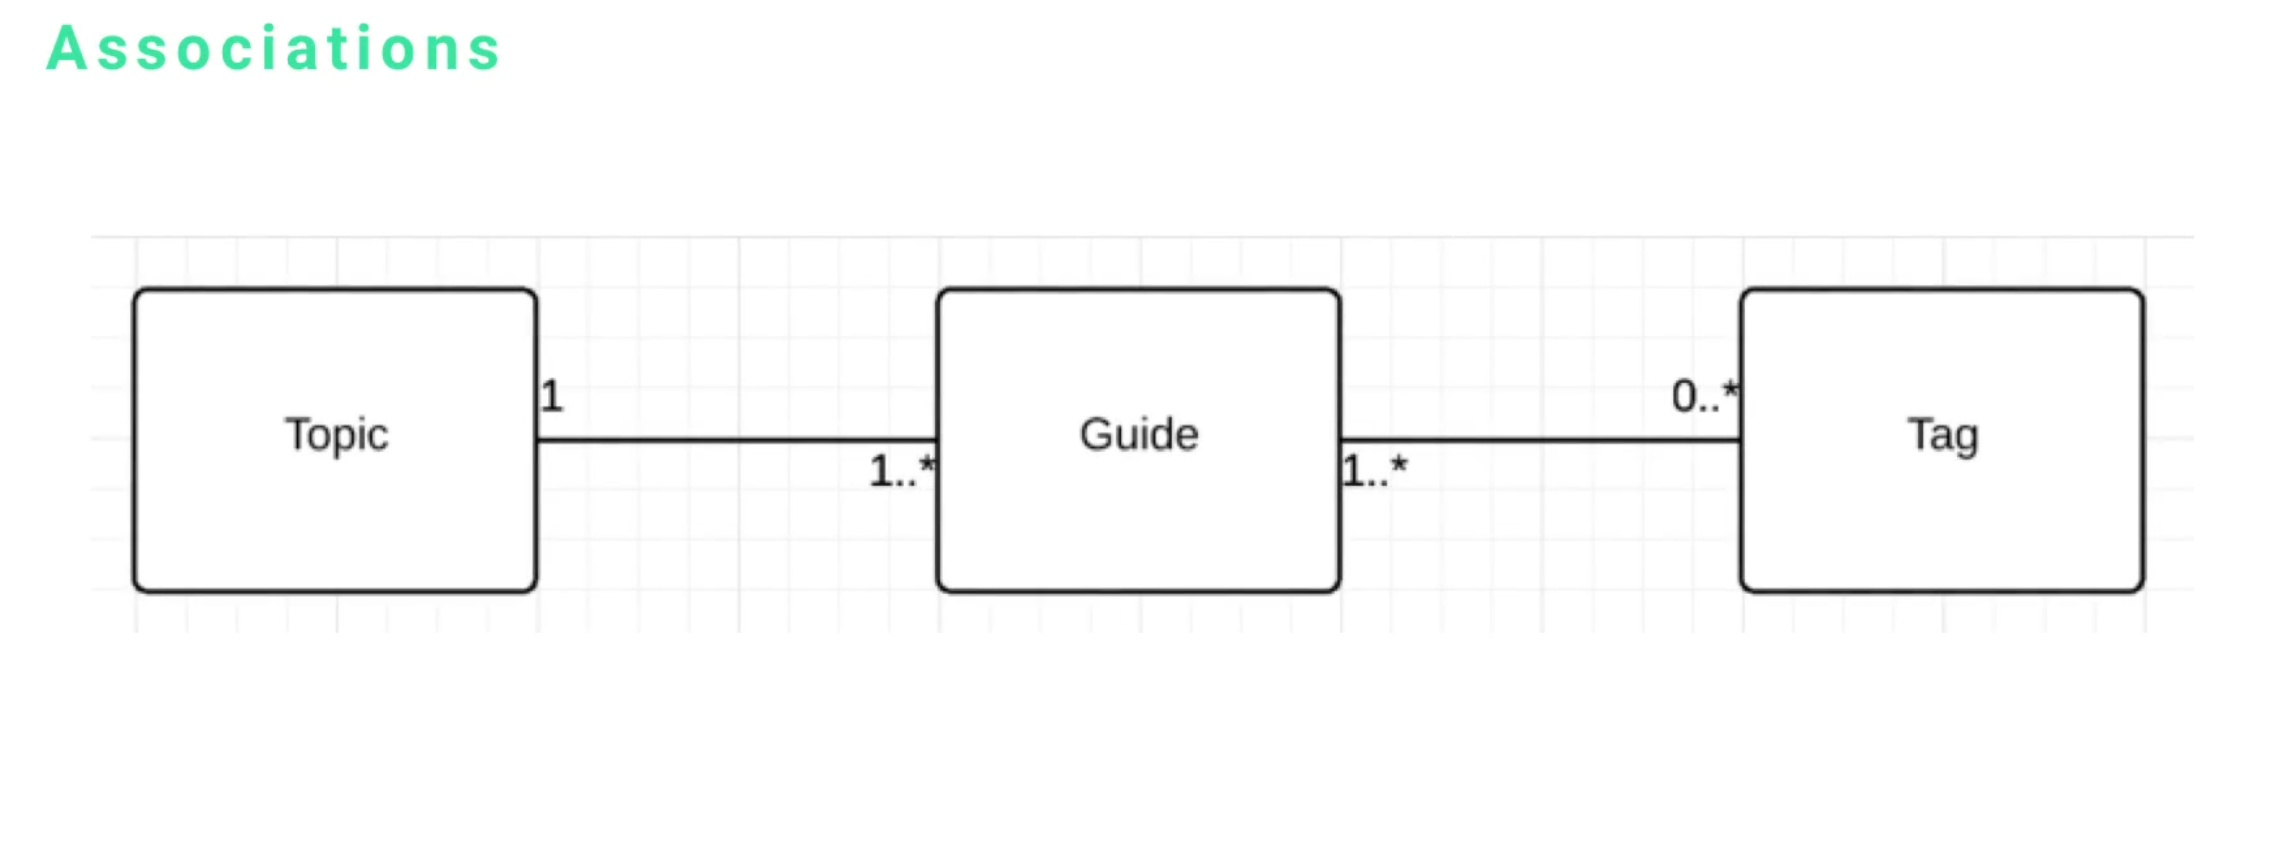 Uml class diagram associations multiplicity and navigability i have a topic class which is connected to a guide which is connected to a tag class each of these have a relationshipassociation with the other one ccuart Image collections